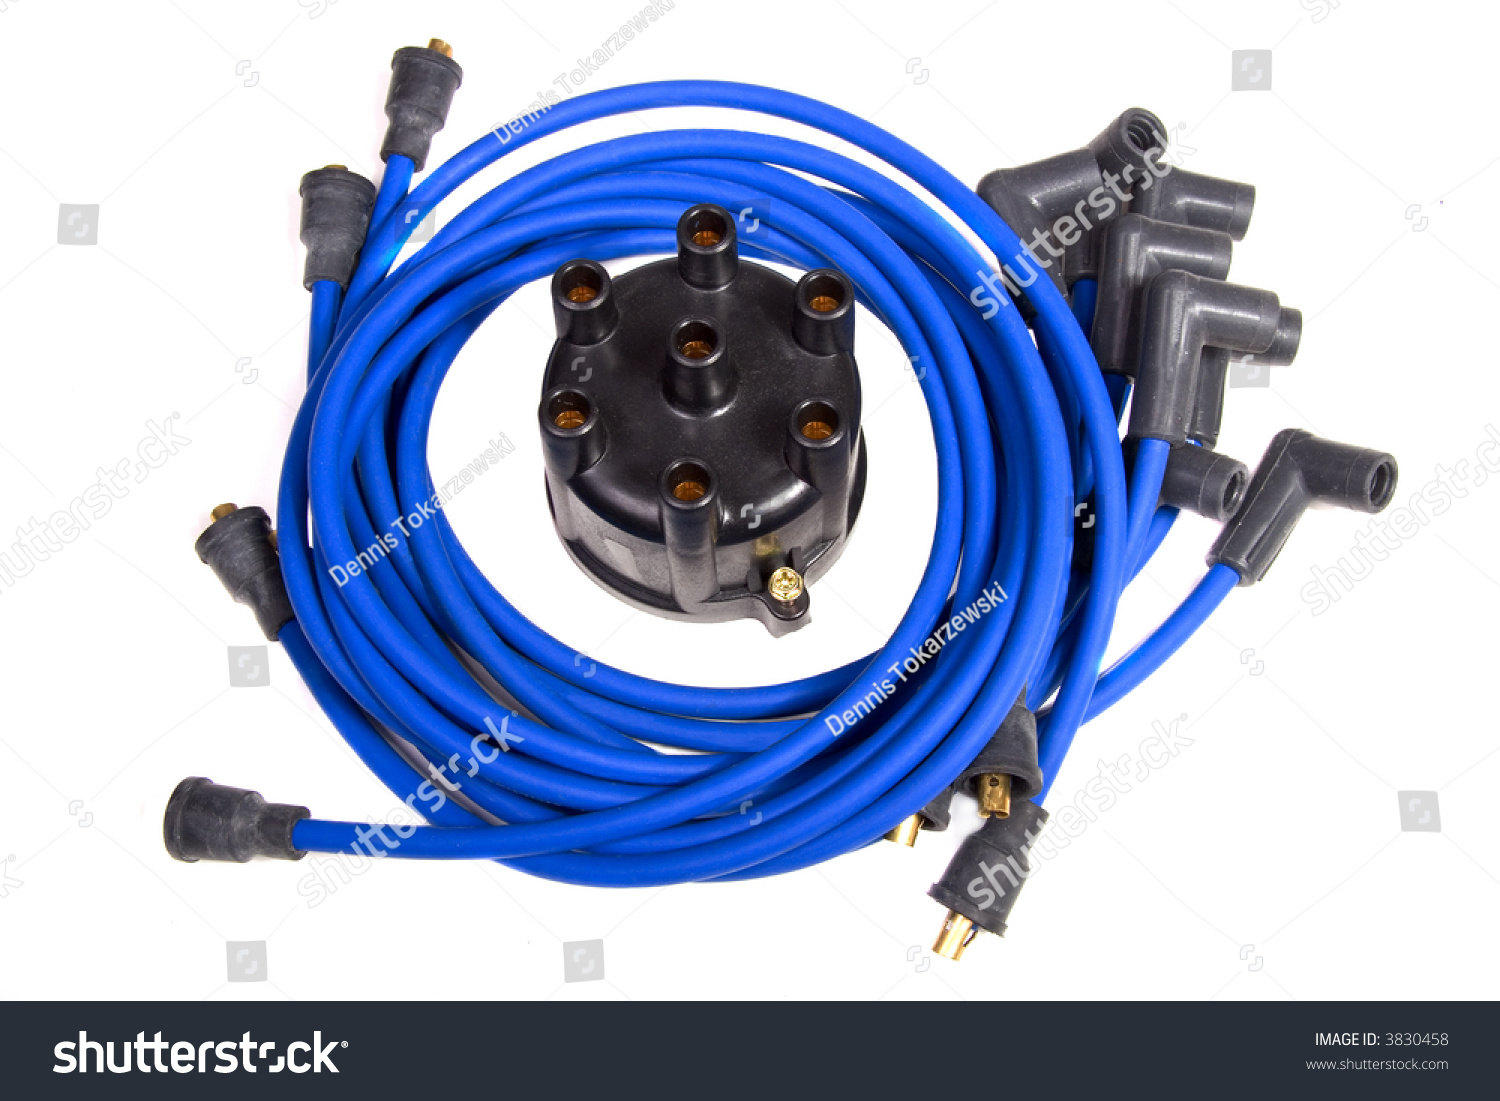 Car Tune Up Parts : Automotive ignition tune up parts over white stock photo